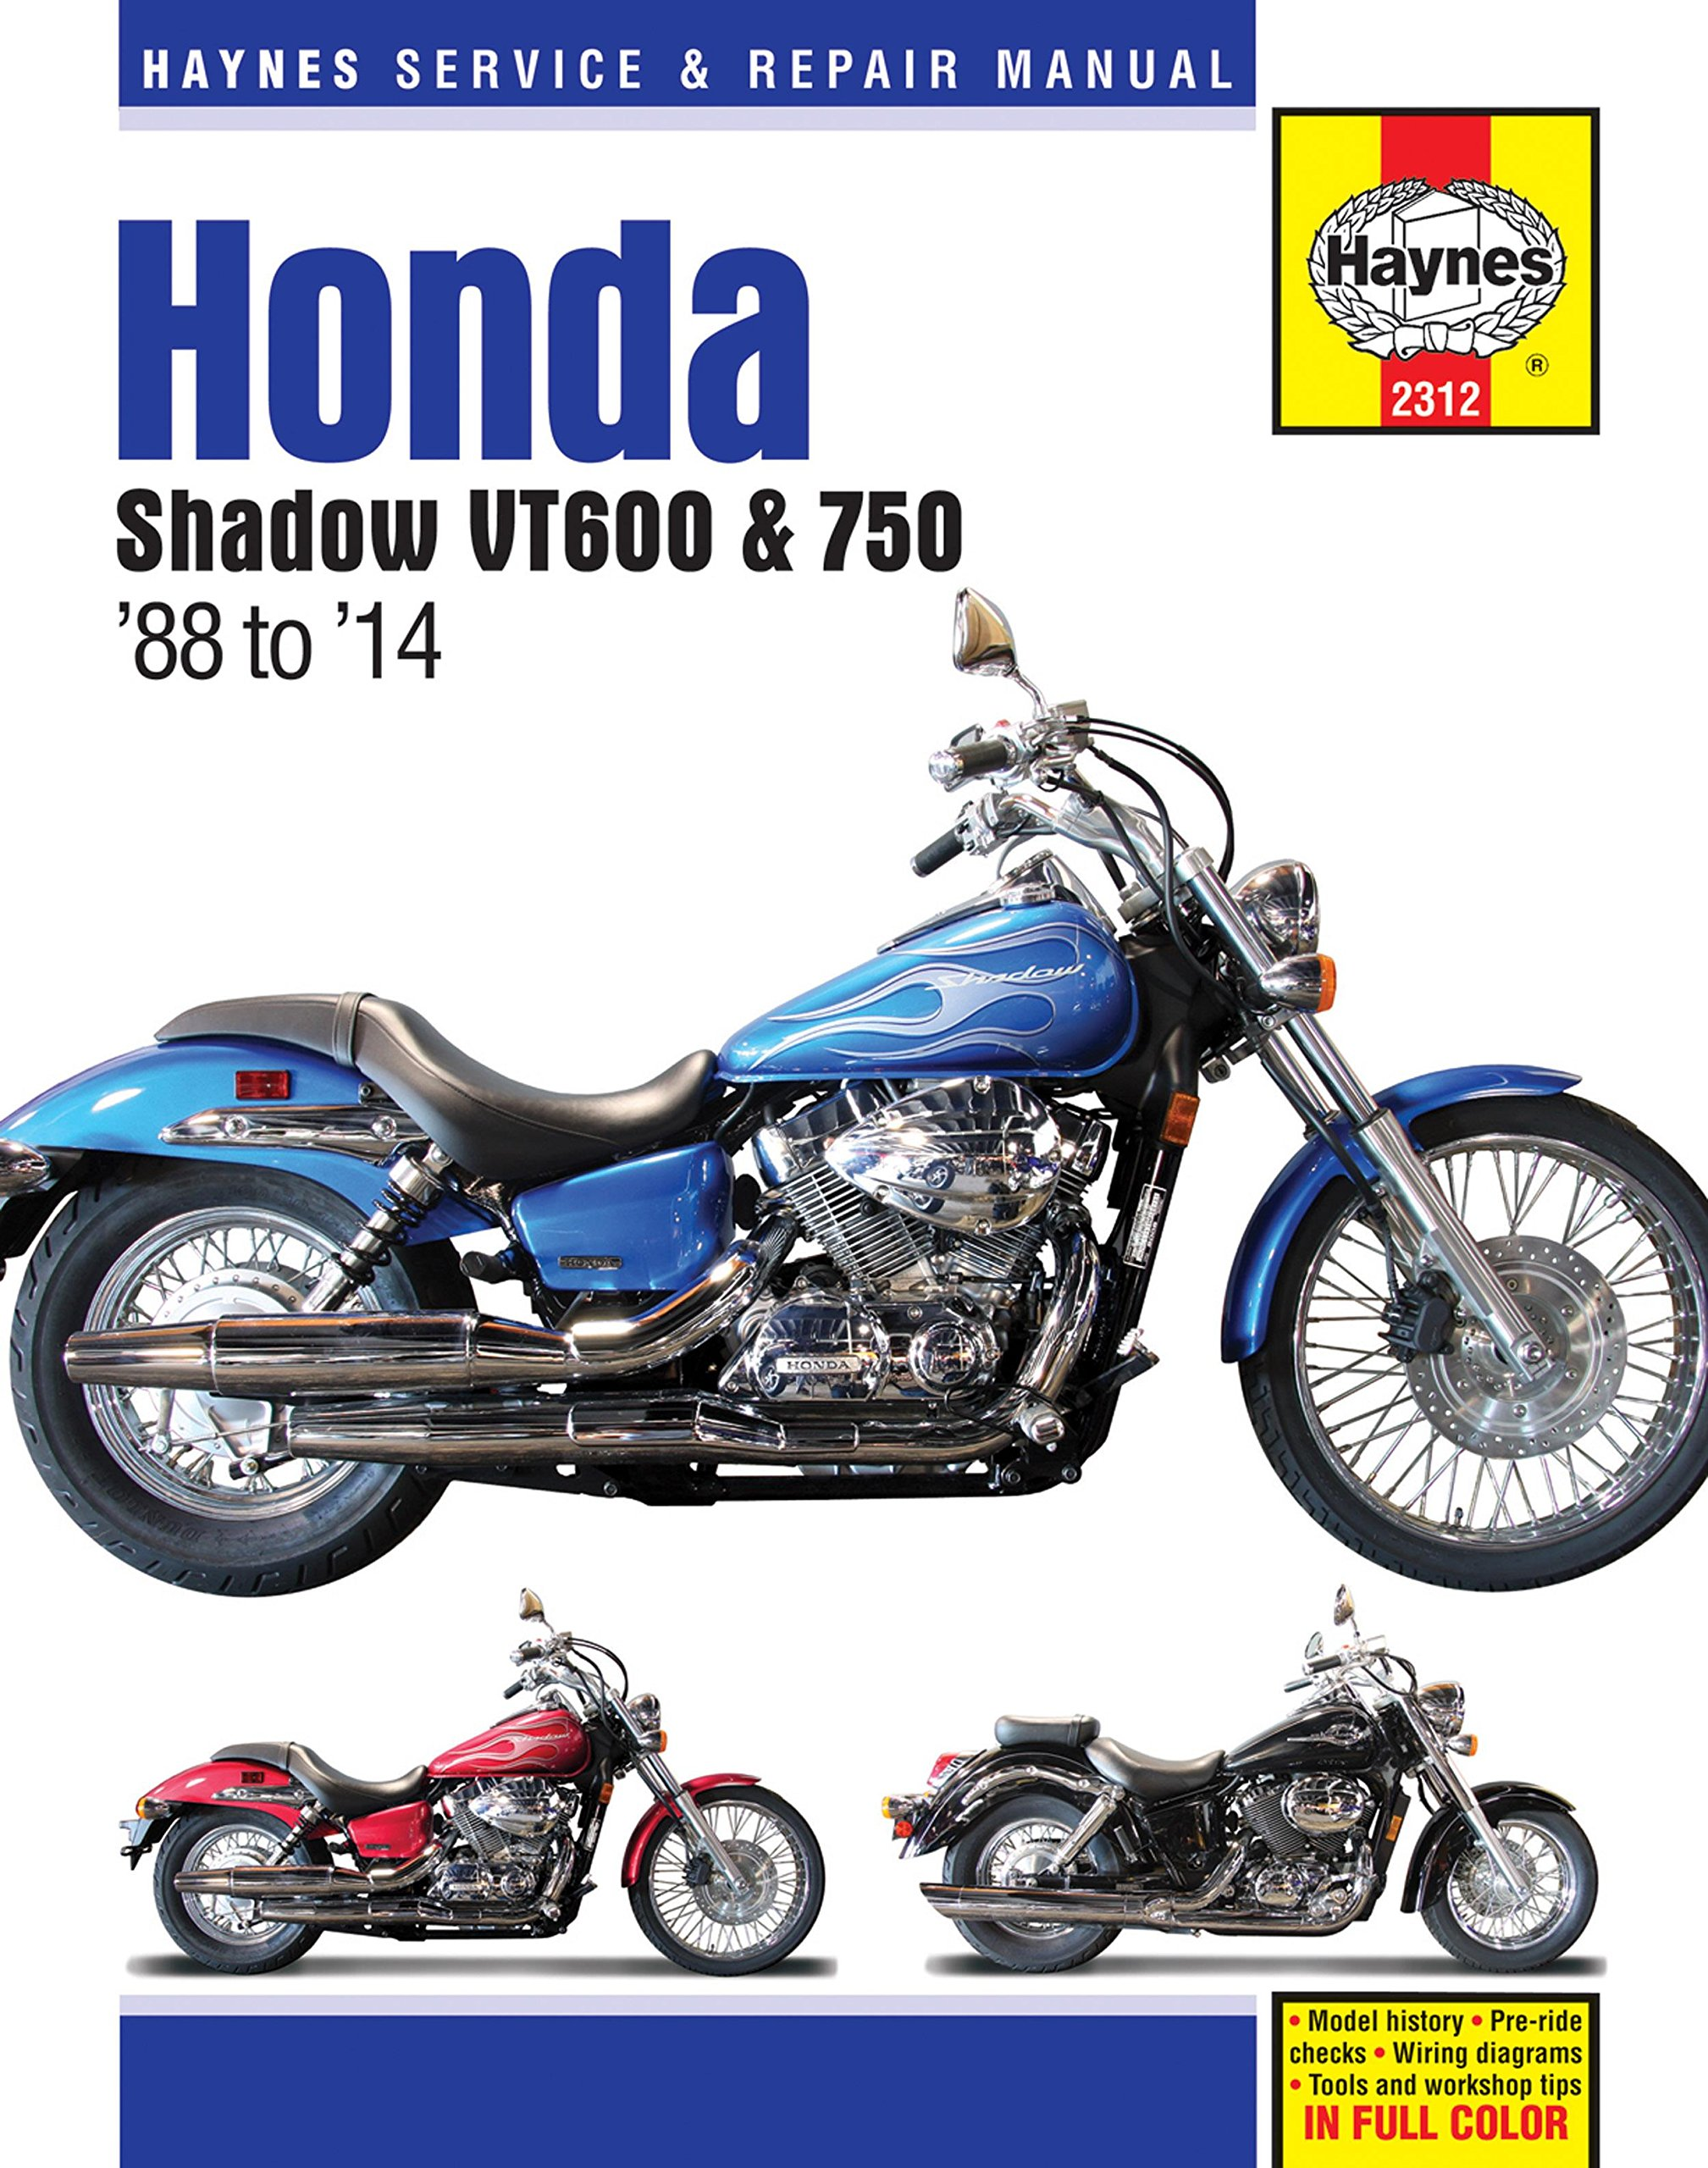 Haynes M2312 Honda Shadow Vt600 And Vt750 Repair Manual Ct 100 Bike Wiring Diagram 1988 2014 Automotive